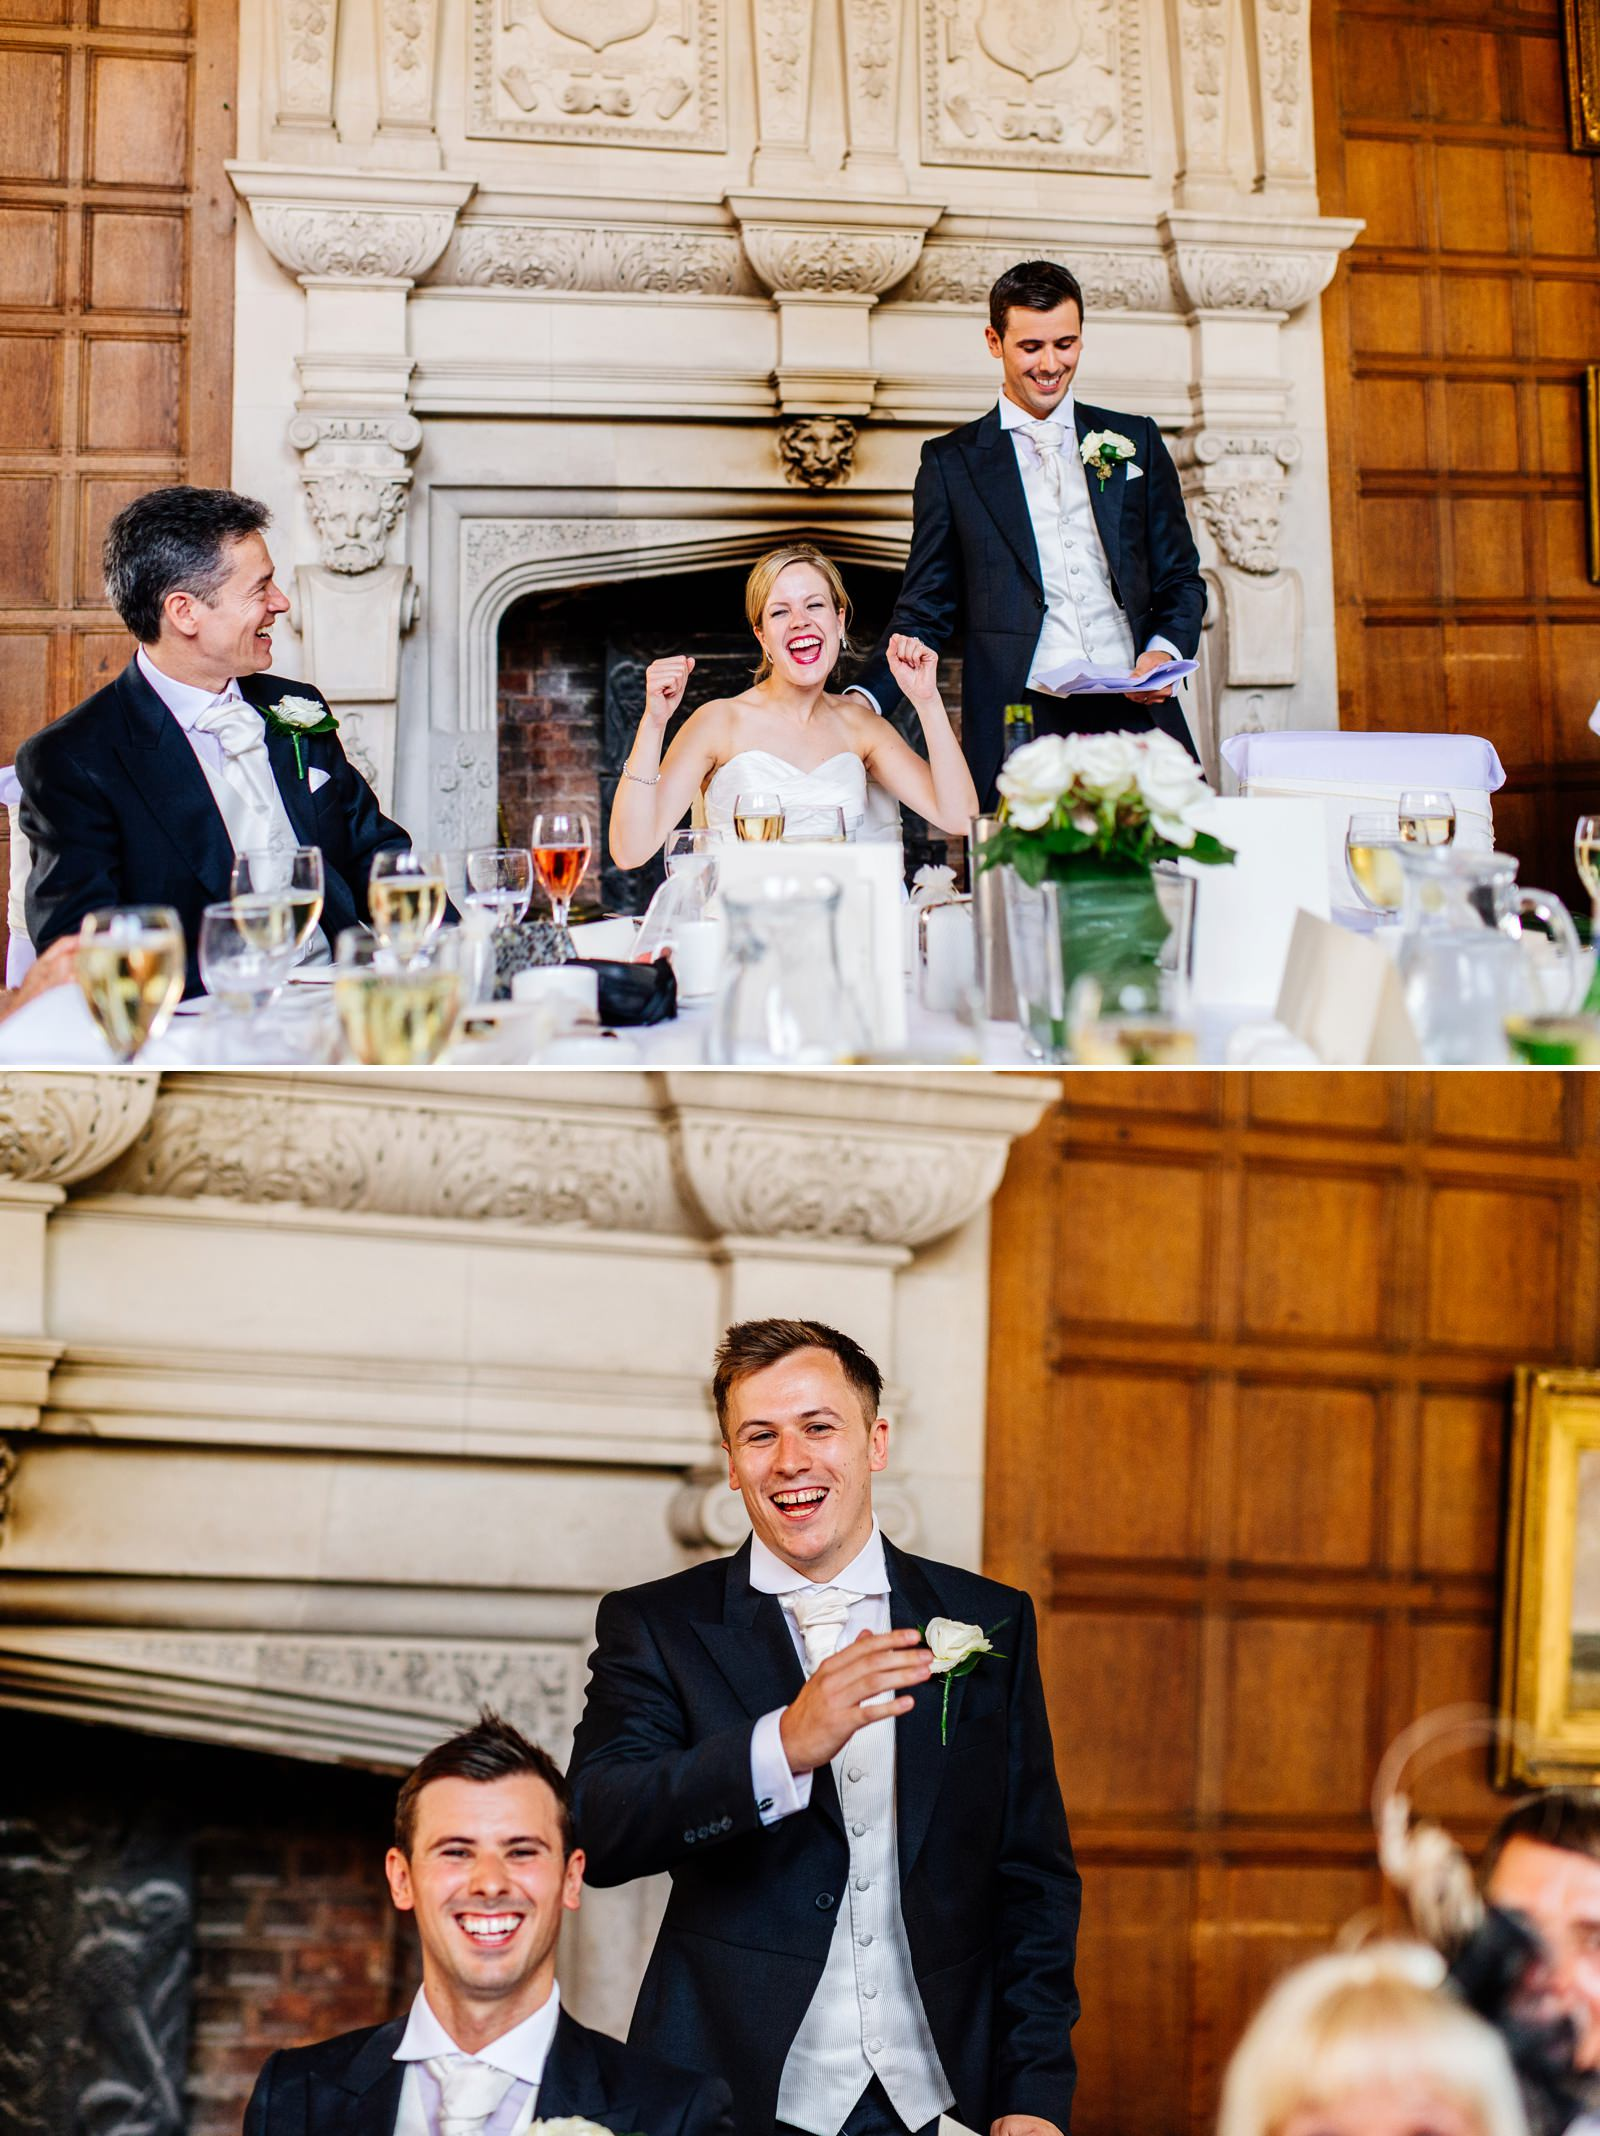 Claire & Paul Wedding_0020